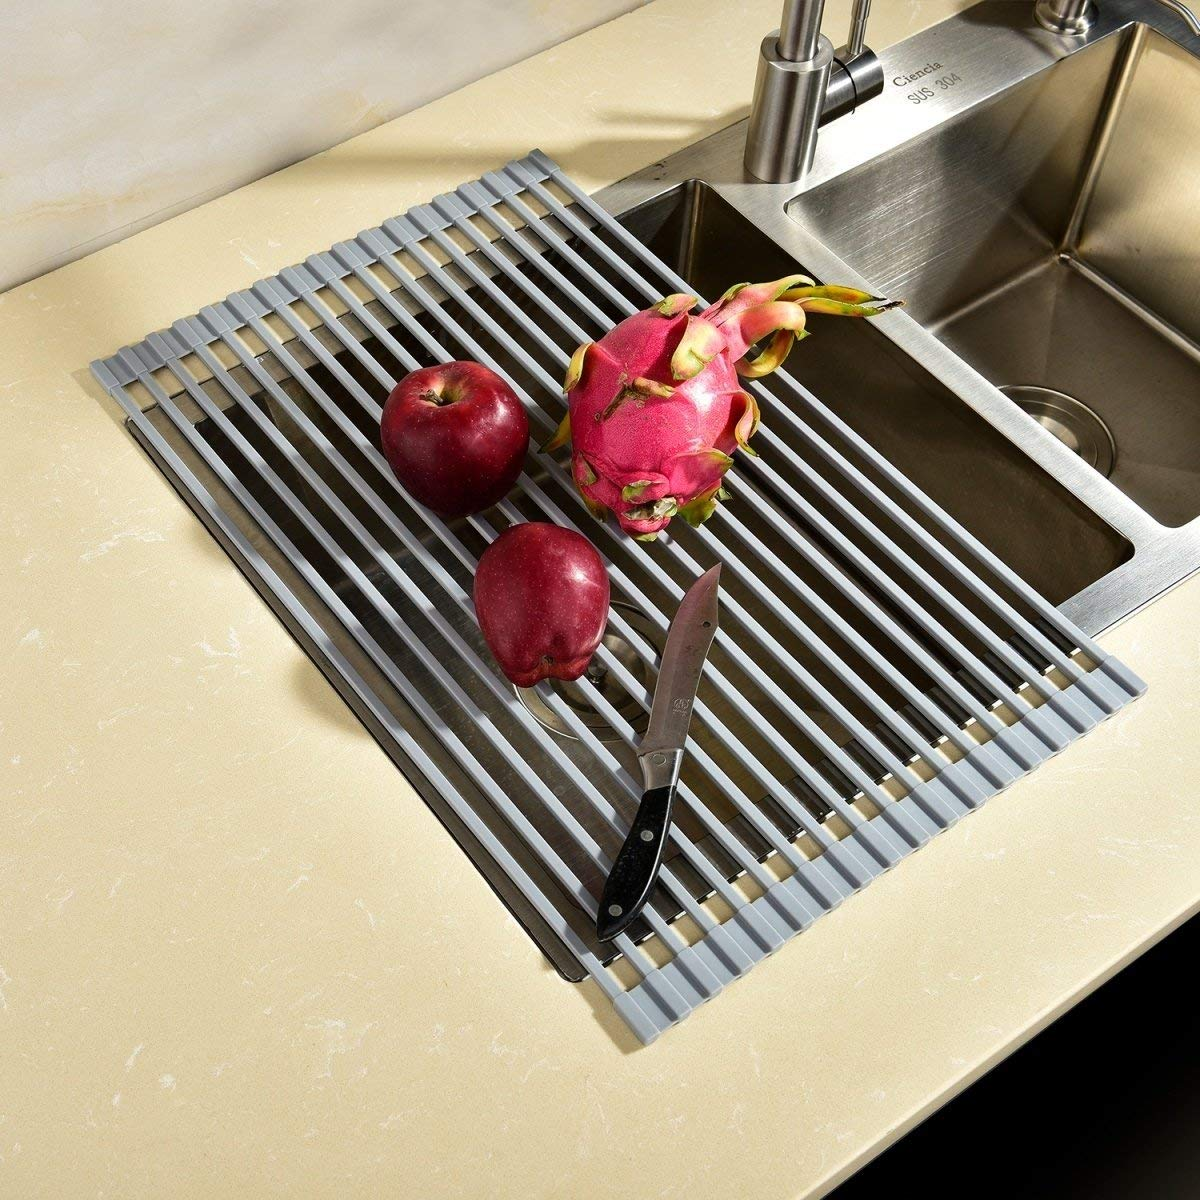 Buy CIENCIA Collapsible Dish Dryer Rack Grey Stainless Steel